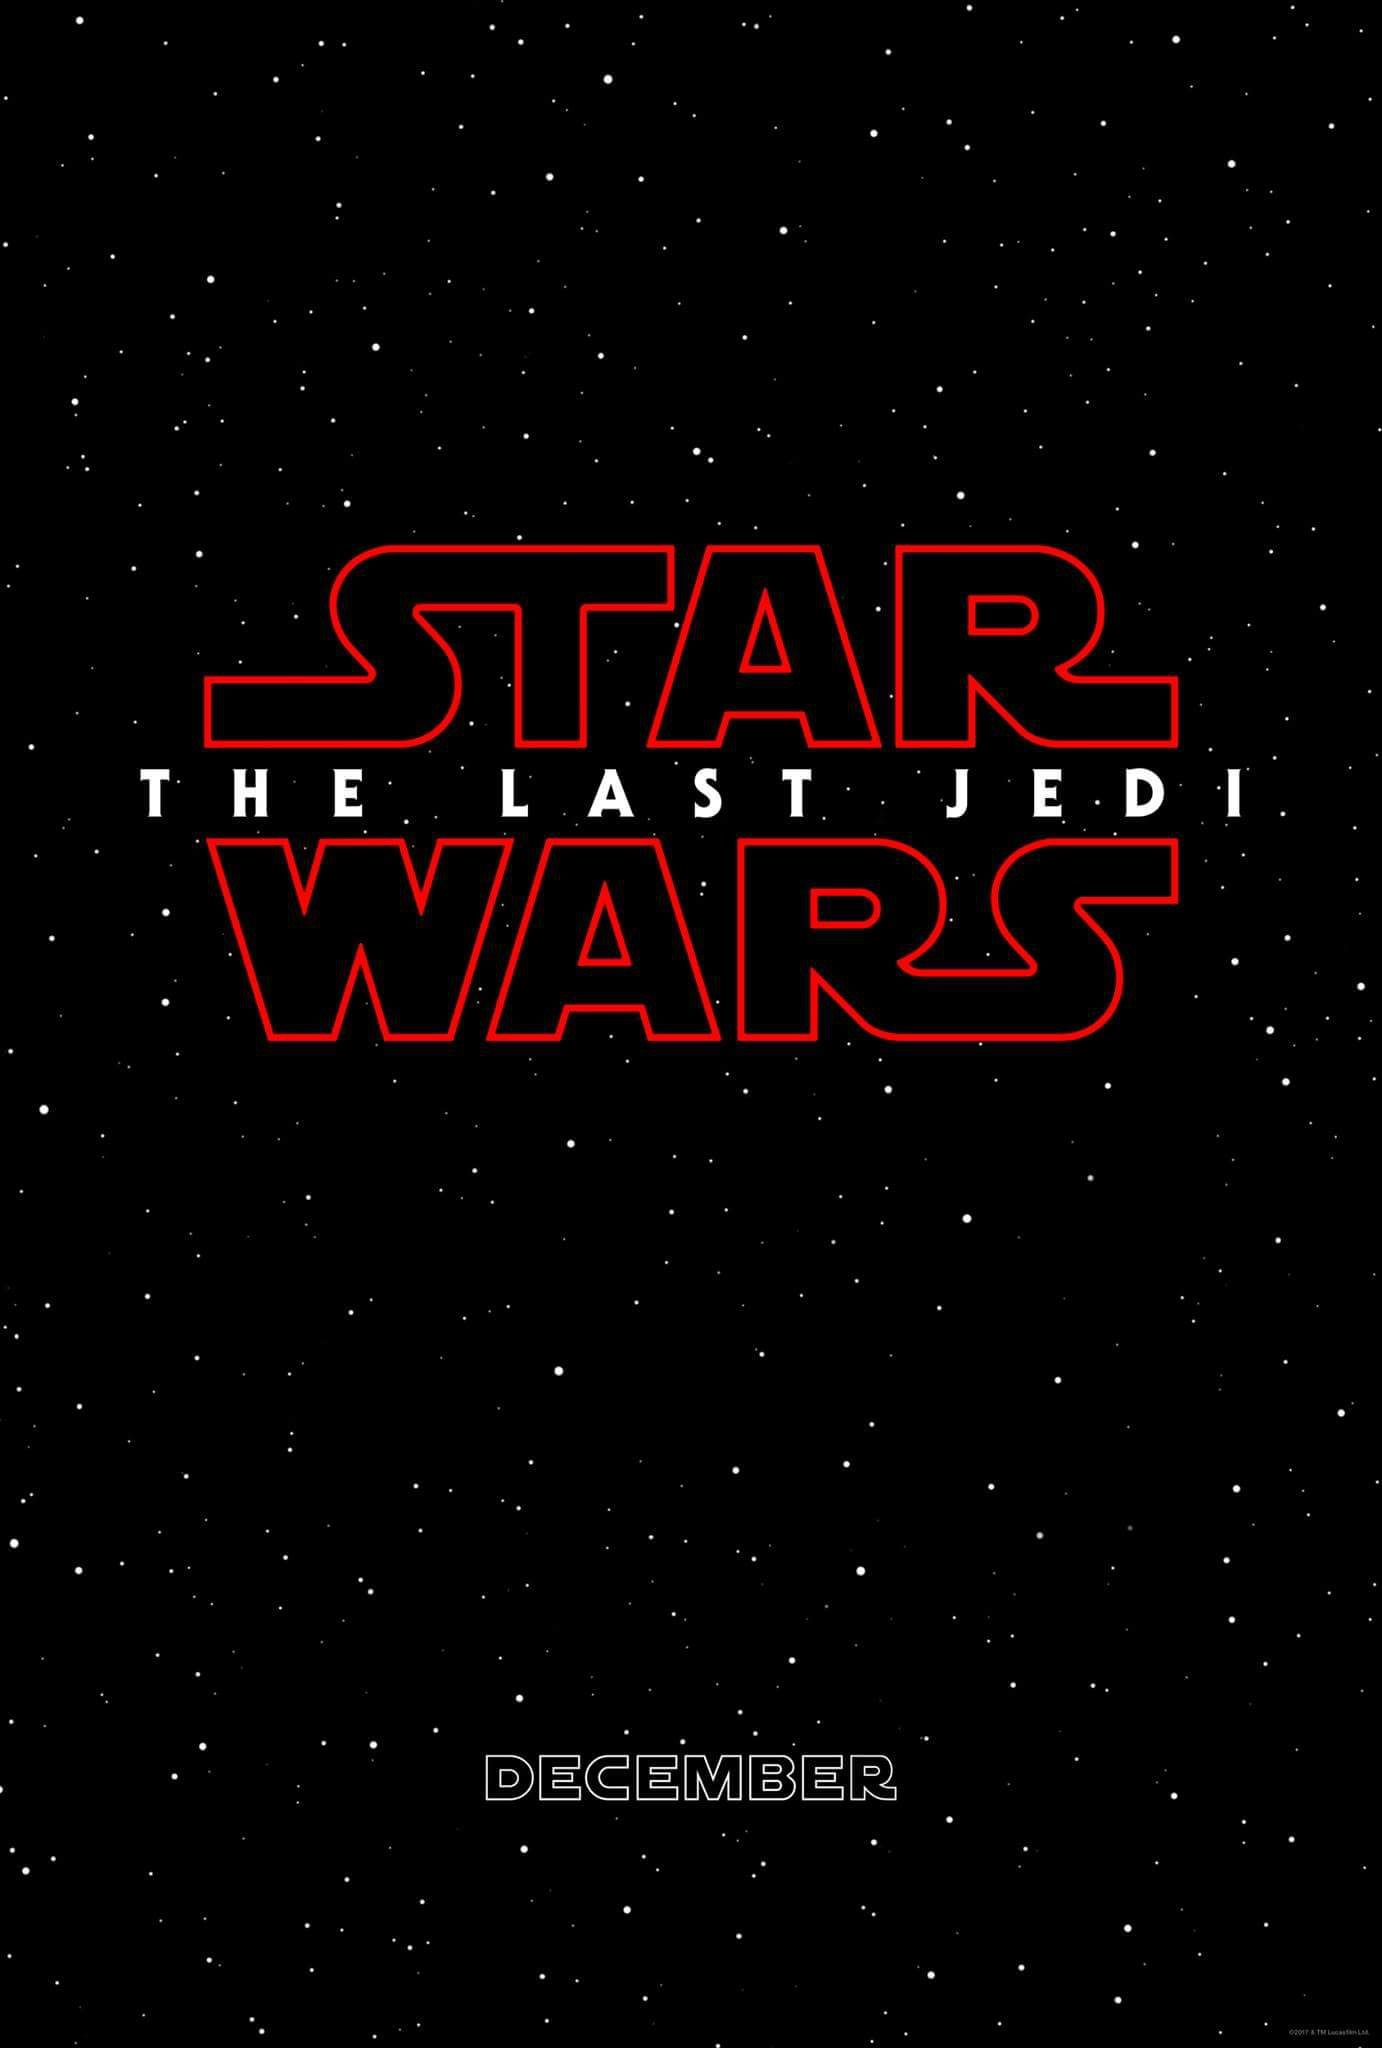 Star Wars Episode Viii The Last Jedi 2017 1382 X 2048